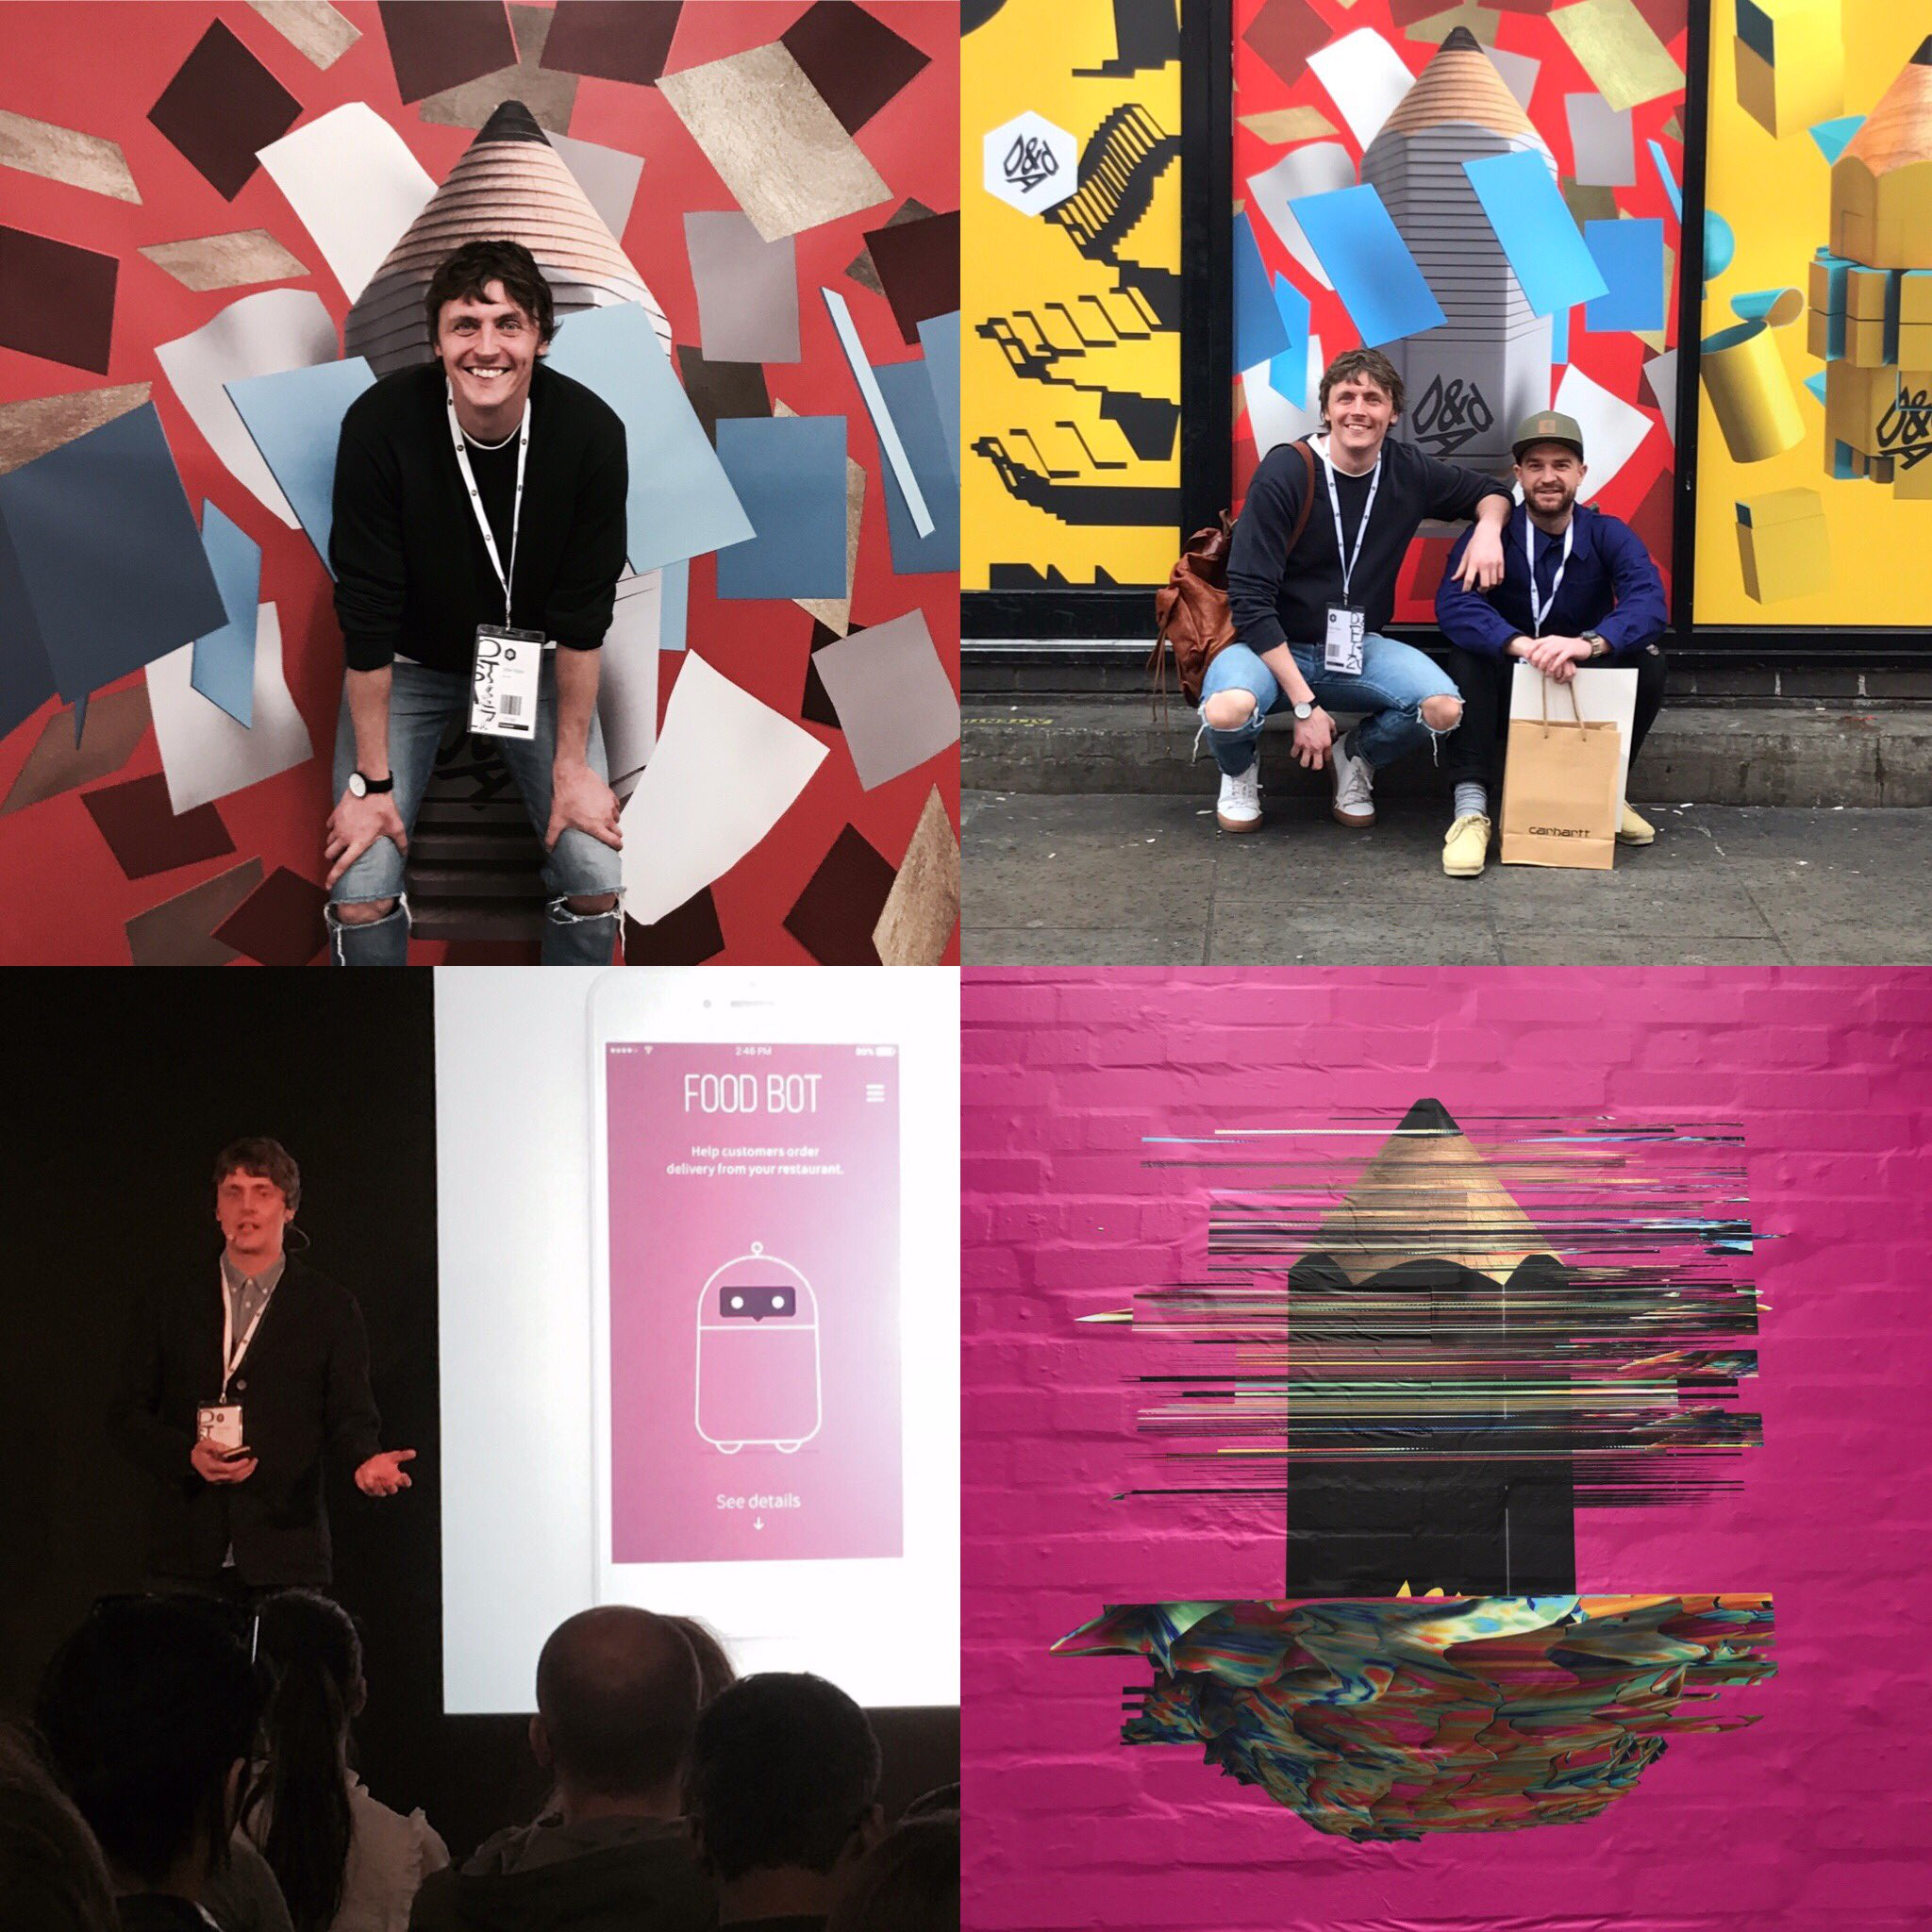 Well that was fun. Thanks to @dandad for inviting me to speak and for hosting a quite brilliant festival of creativity. #dandad17 https://t.co/BIkBJb0CBO